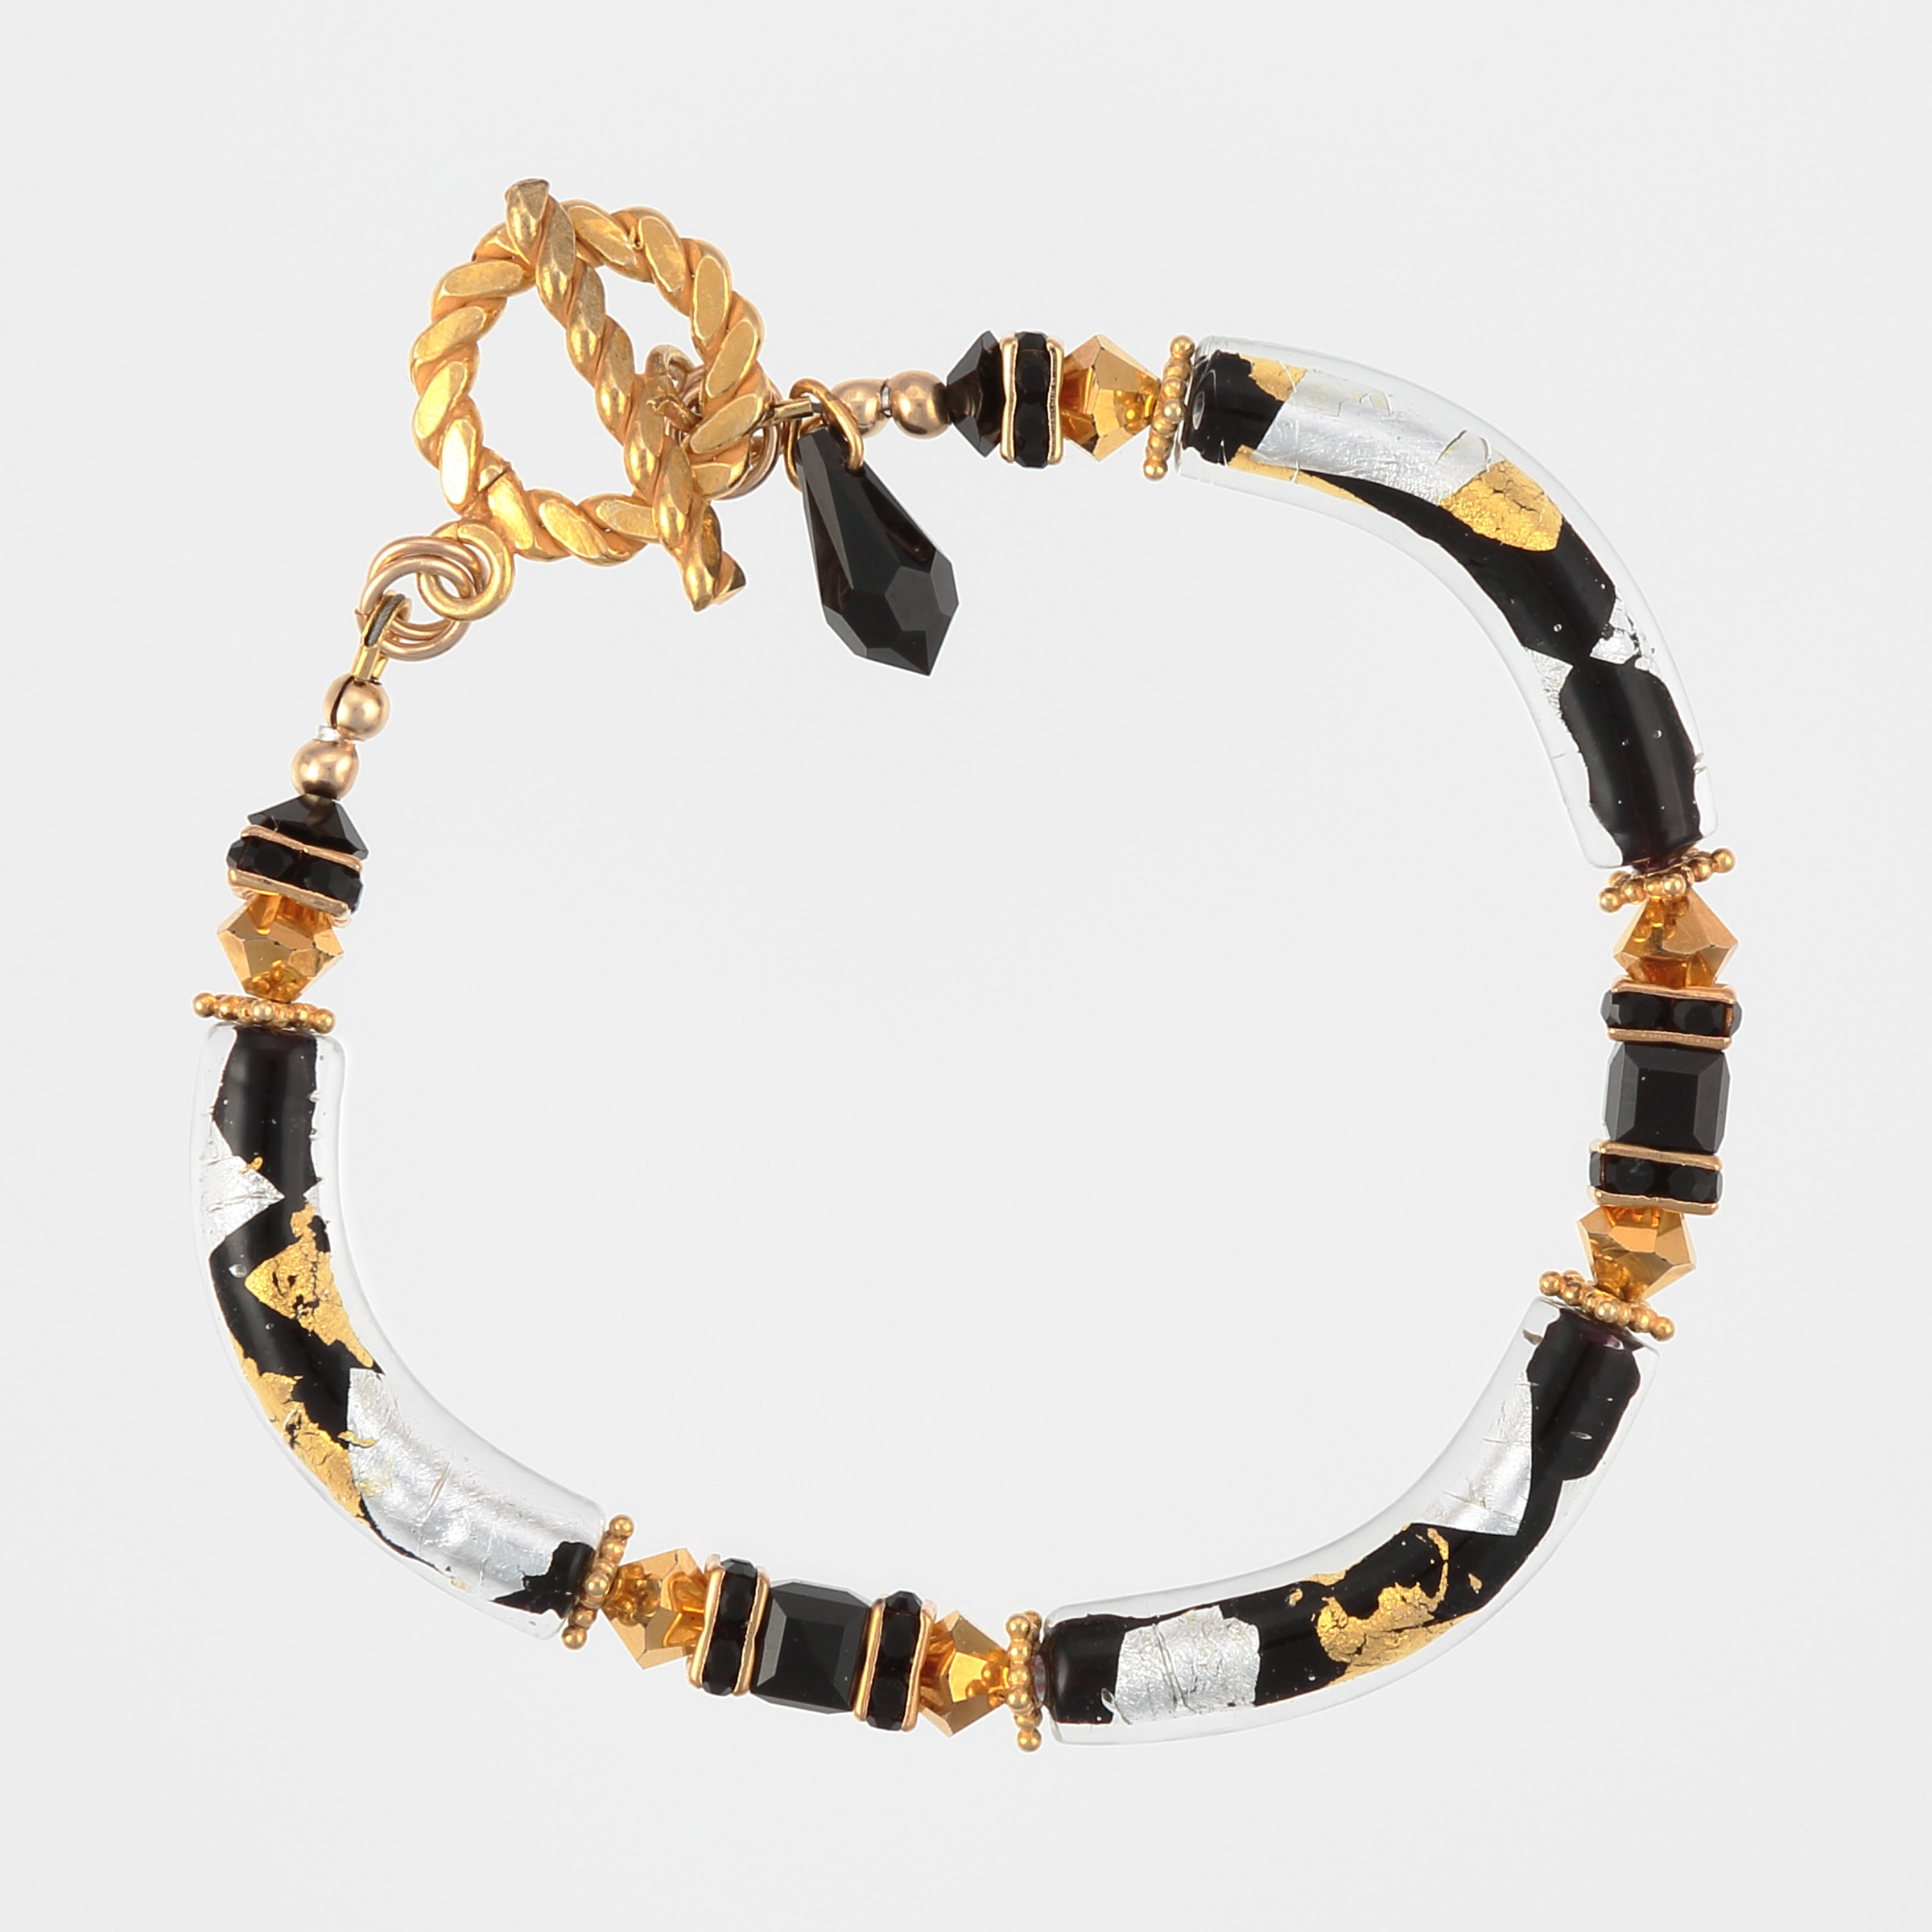 Murano gold bracelet in black, gold, silver, yellow Italian art glass and vermeil